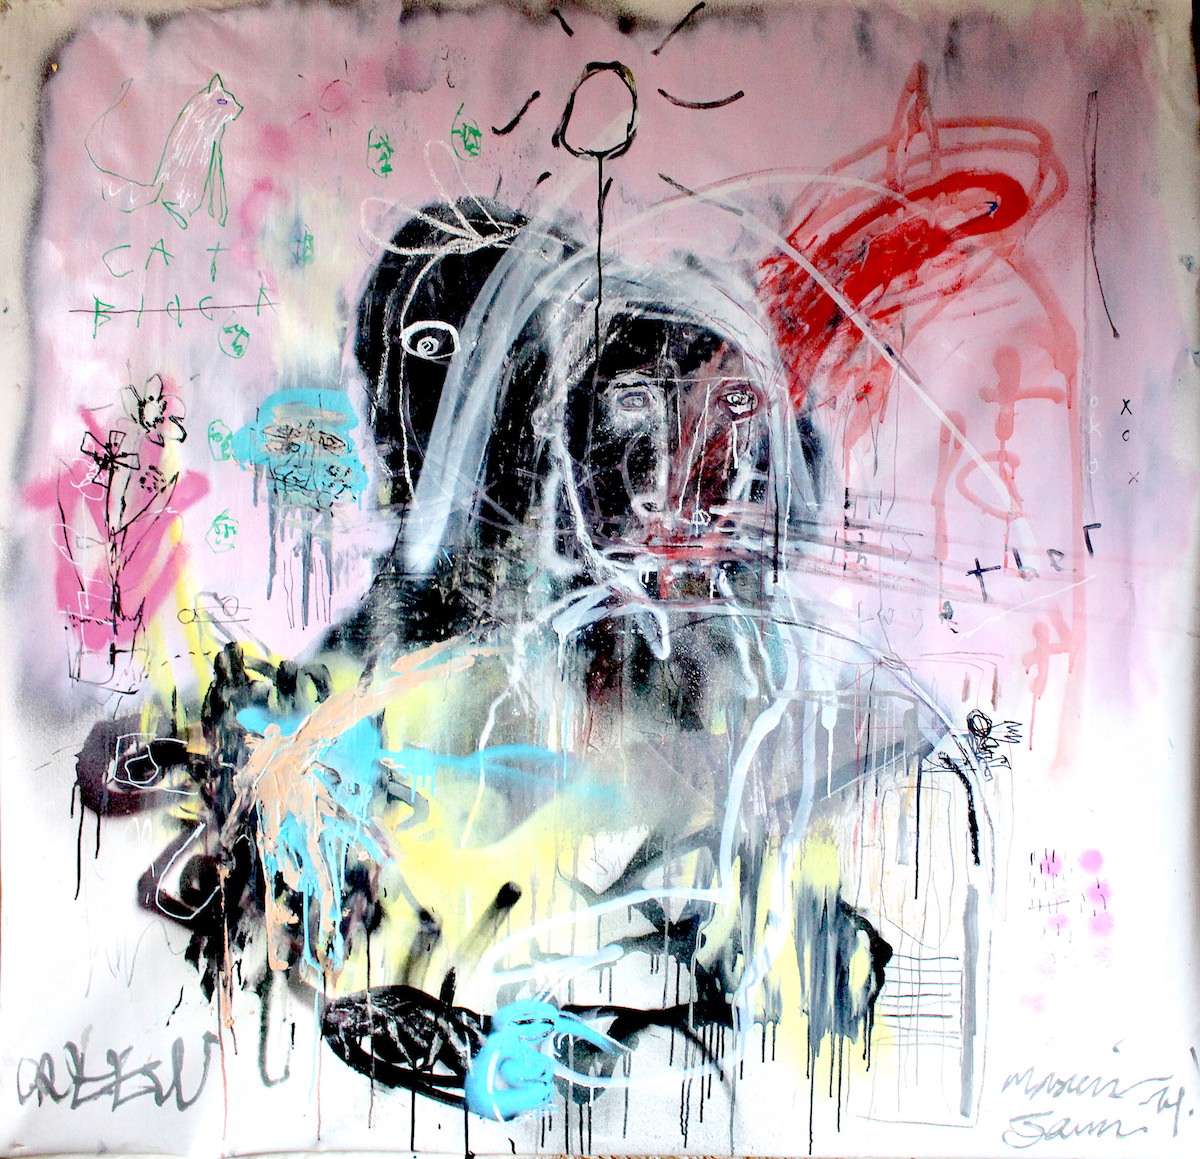 In this together by James Green Artist & Monsieur Jamin